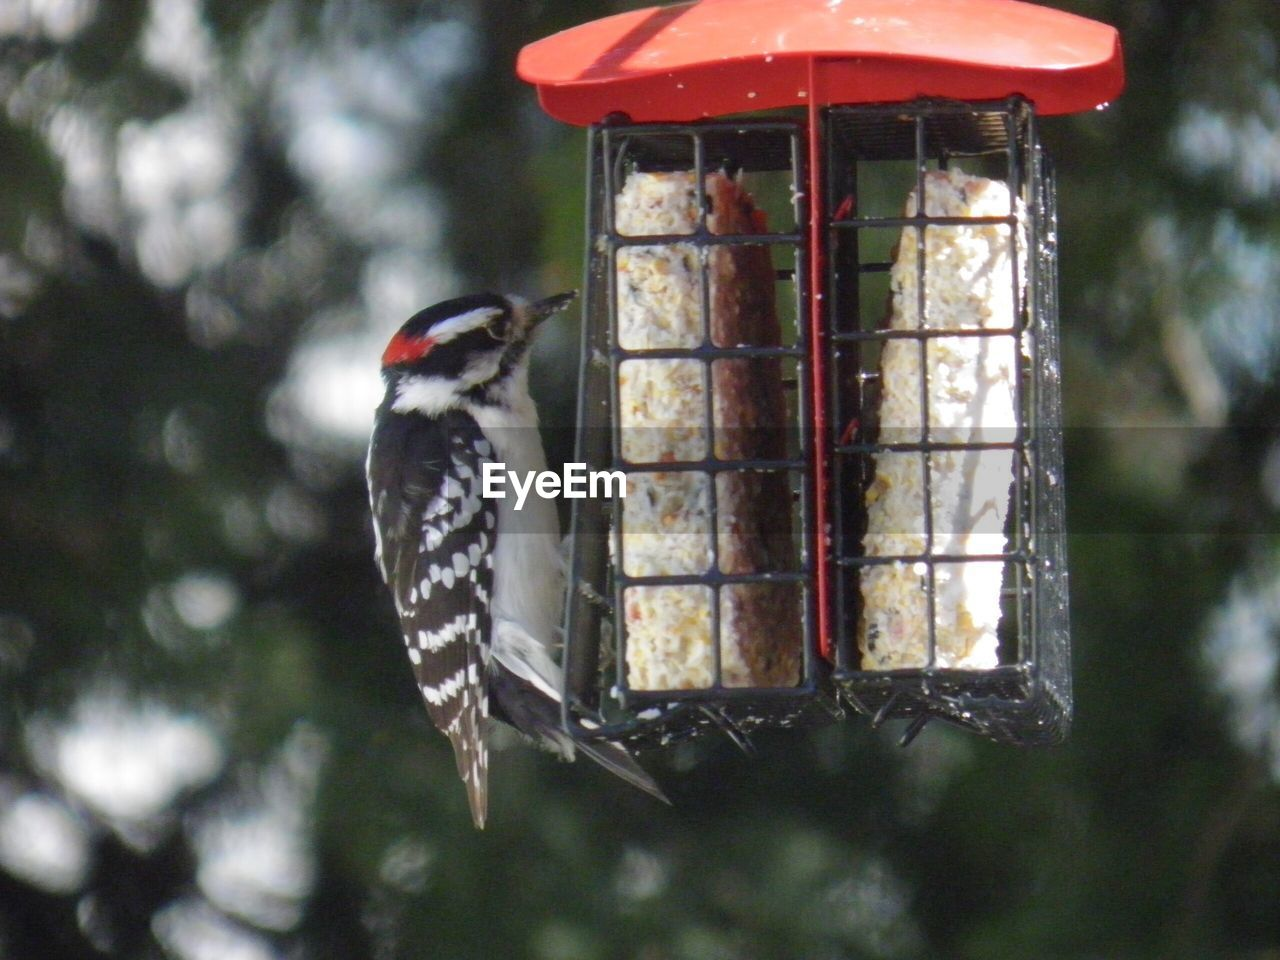 bird, vertebrate, animal, bird feeder, animal themes, animal wildlife, focus on foreground, animals in the wild, one animal, woodpecker, day, perching, no people, food, outdoors, close-up, food and drink, tree, nature, eating